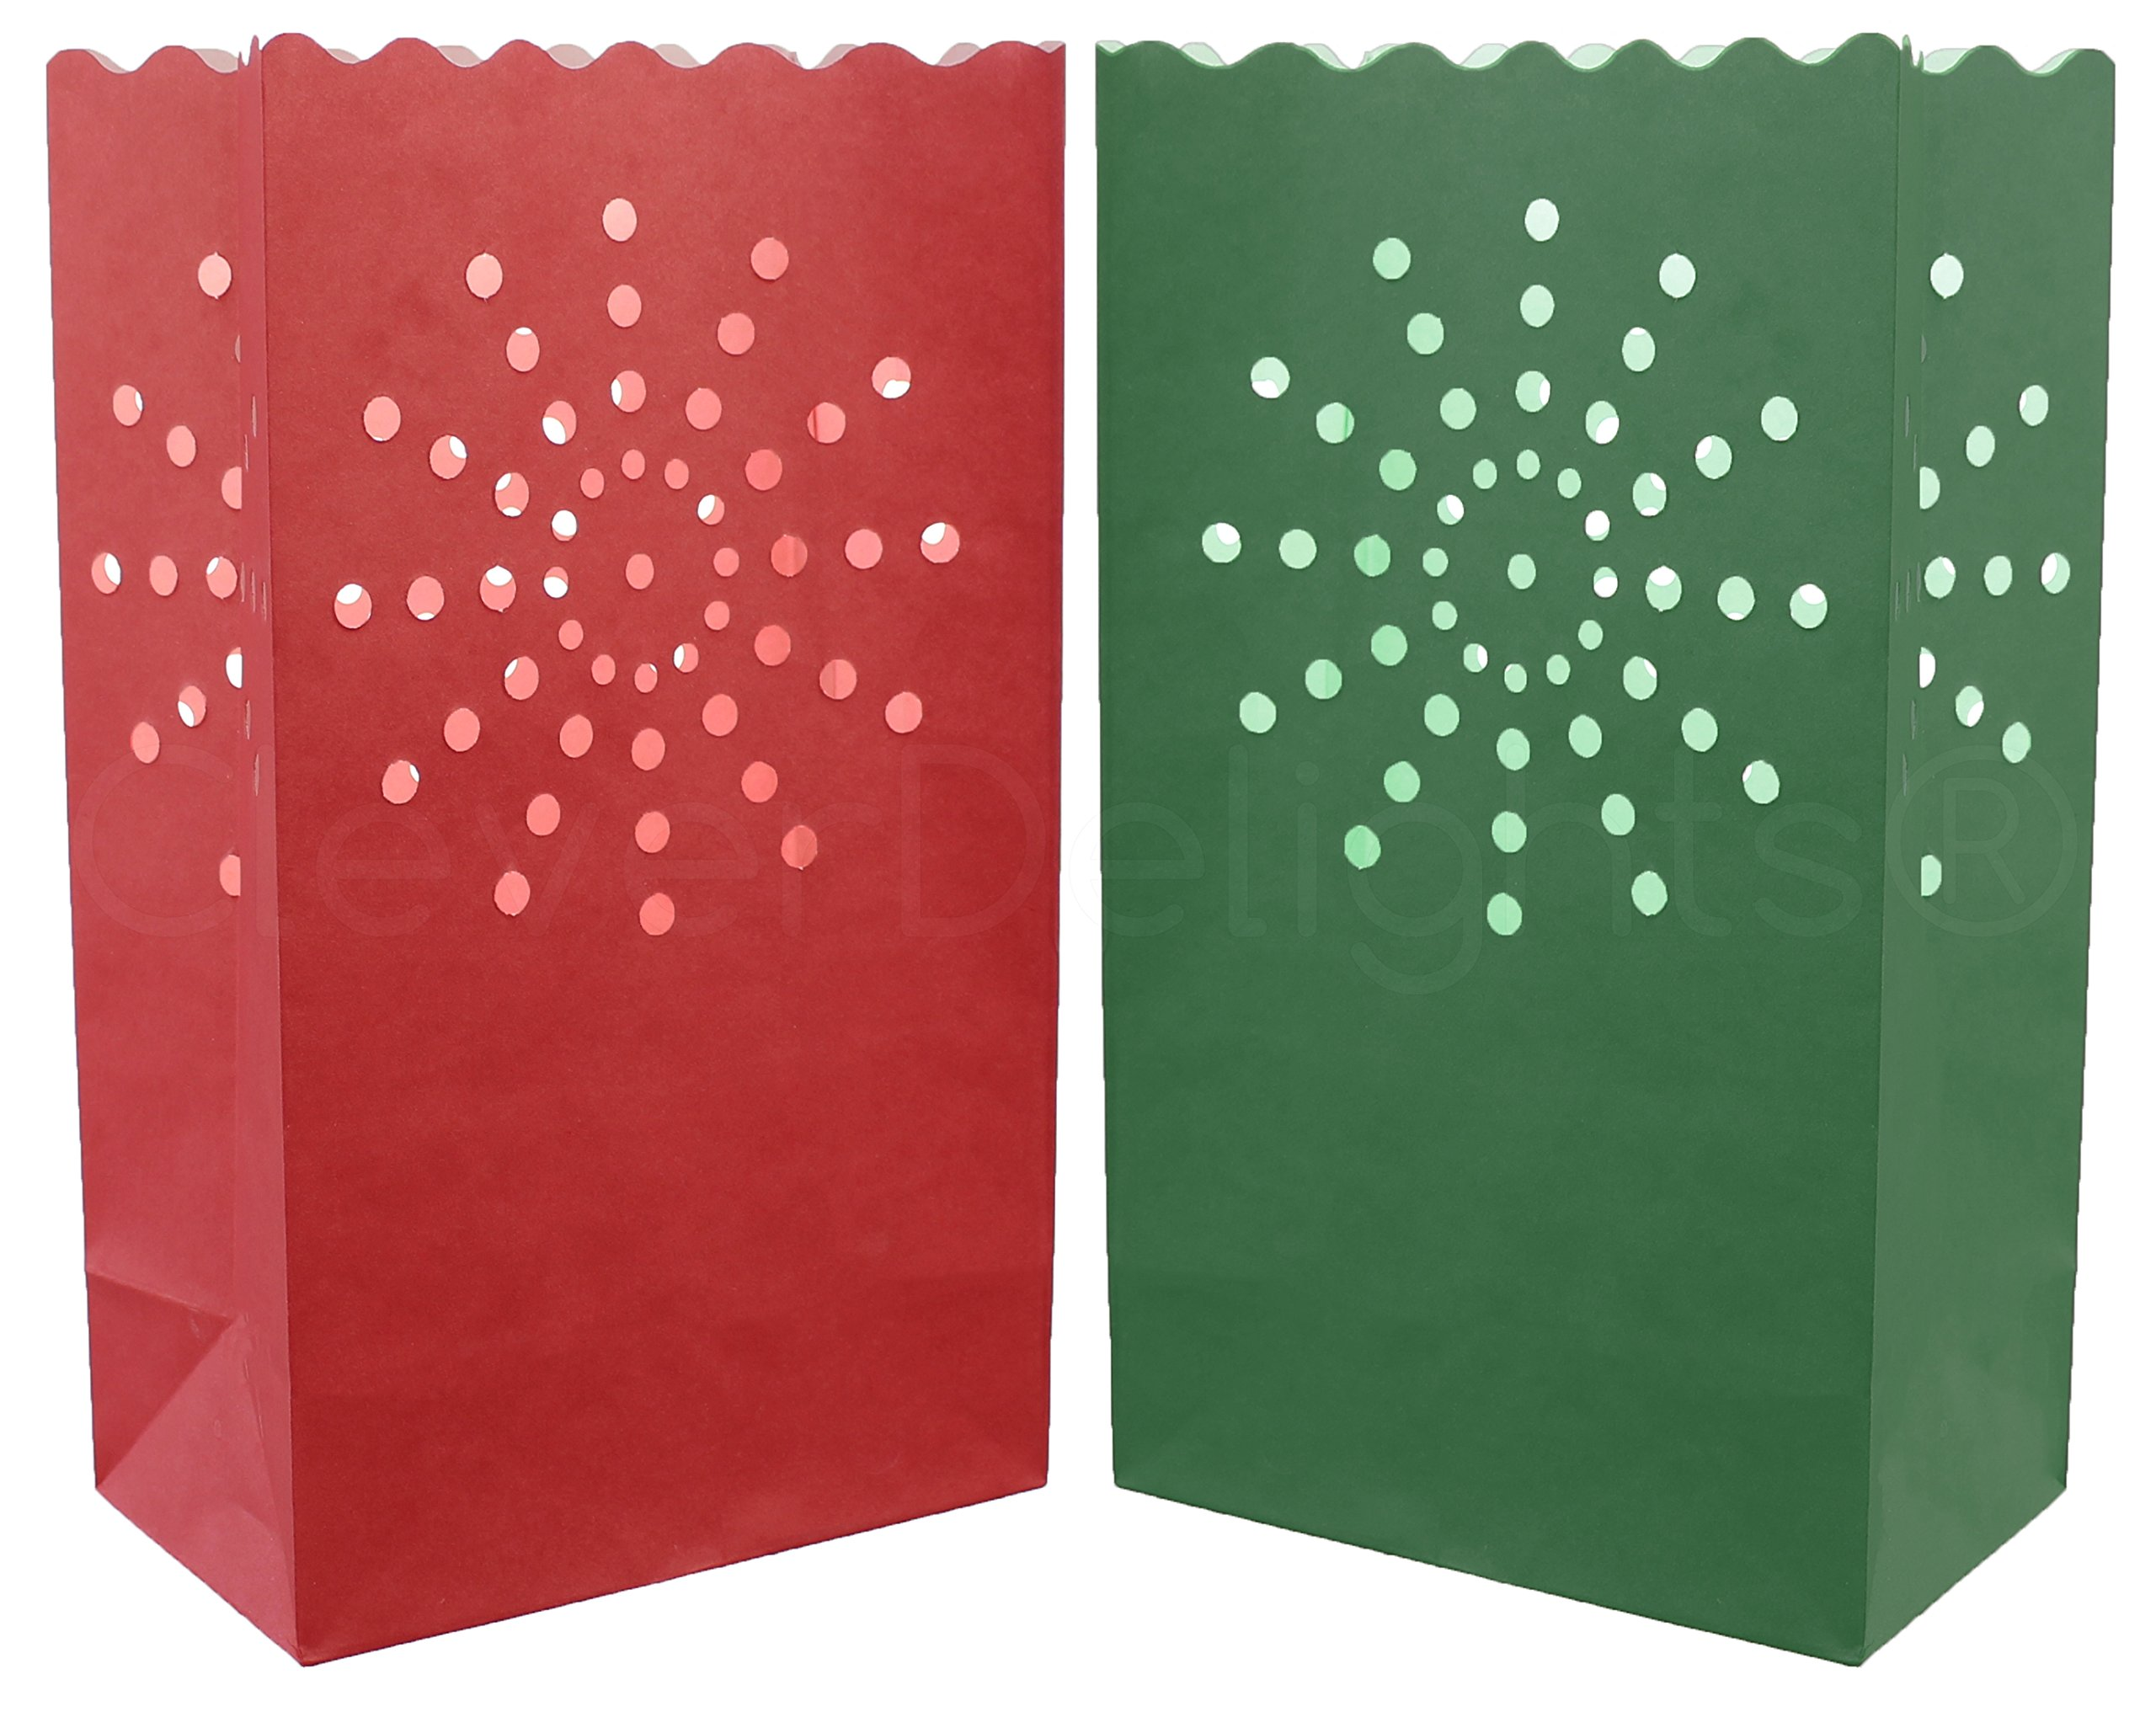 20 Pk - CleverDelights Red & Green Luminary Bags - Sunburst - Flame Resistant Christmas Holiday Luminaria by CleverDelights